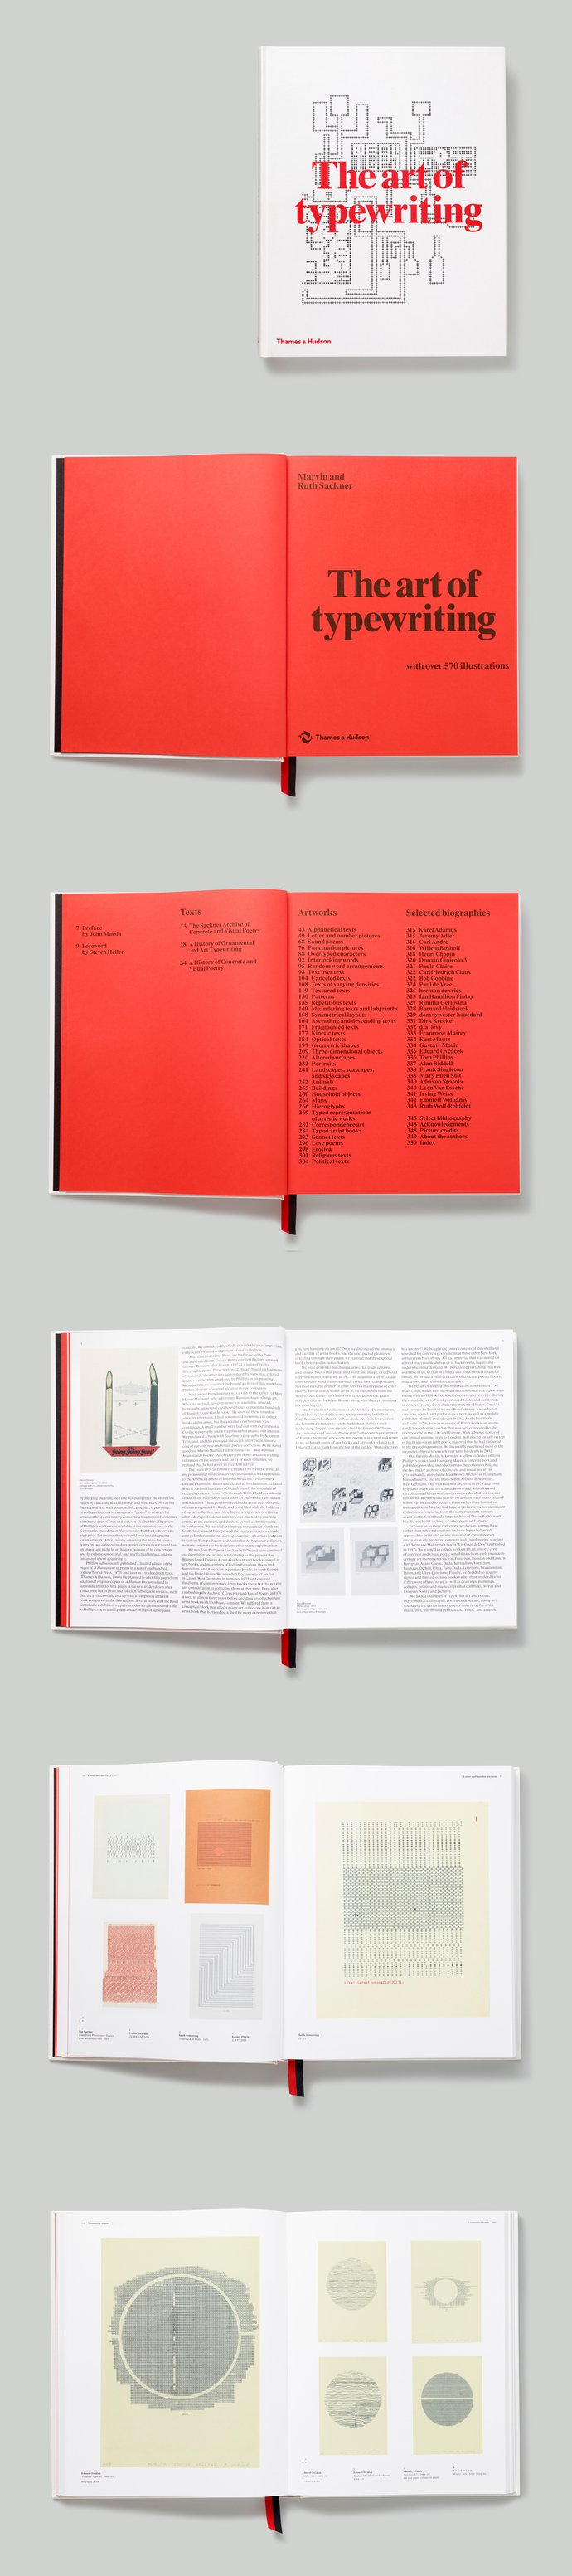 Thames & Hudson – The art of typewriting, 2015 (Publication), image 2